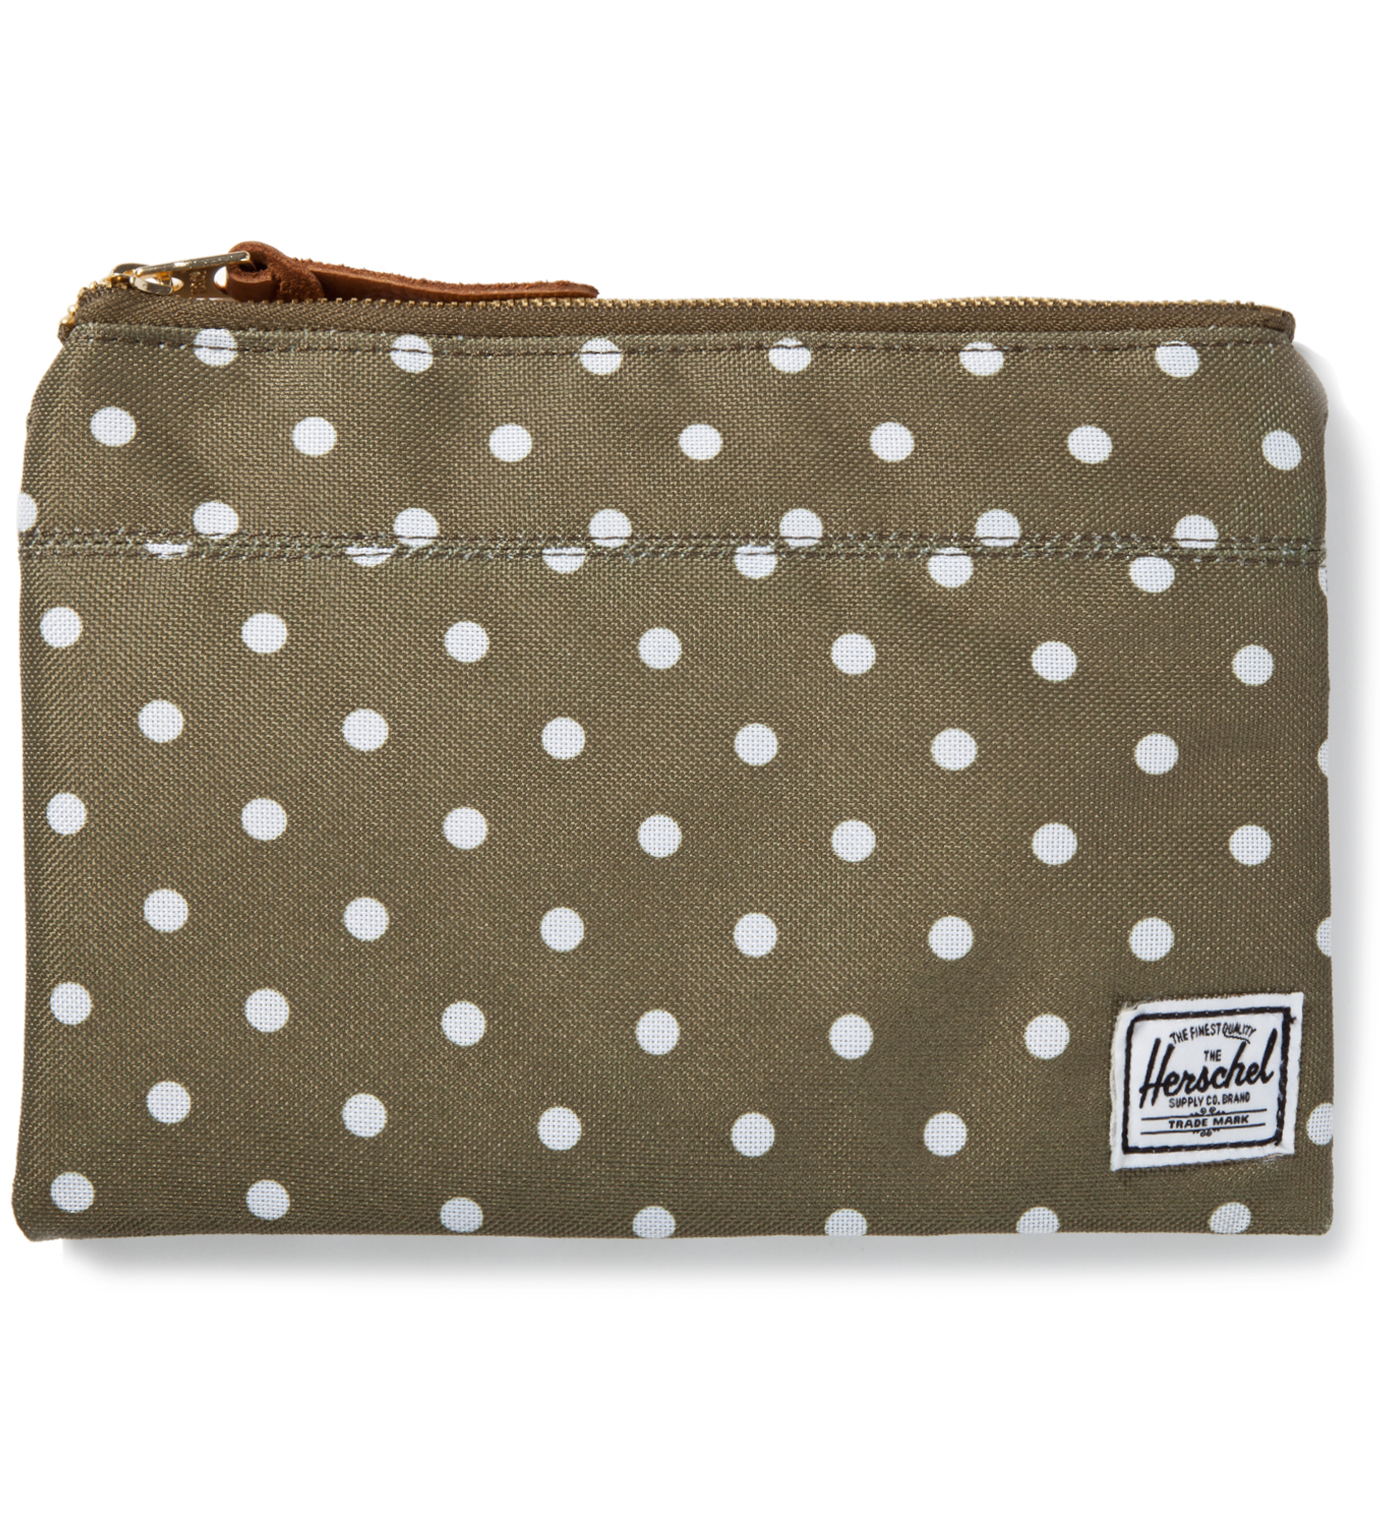 Herschel Supply Co. Olive Polka Dot Field Pouch Large